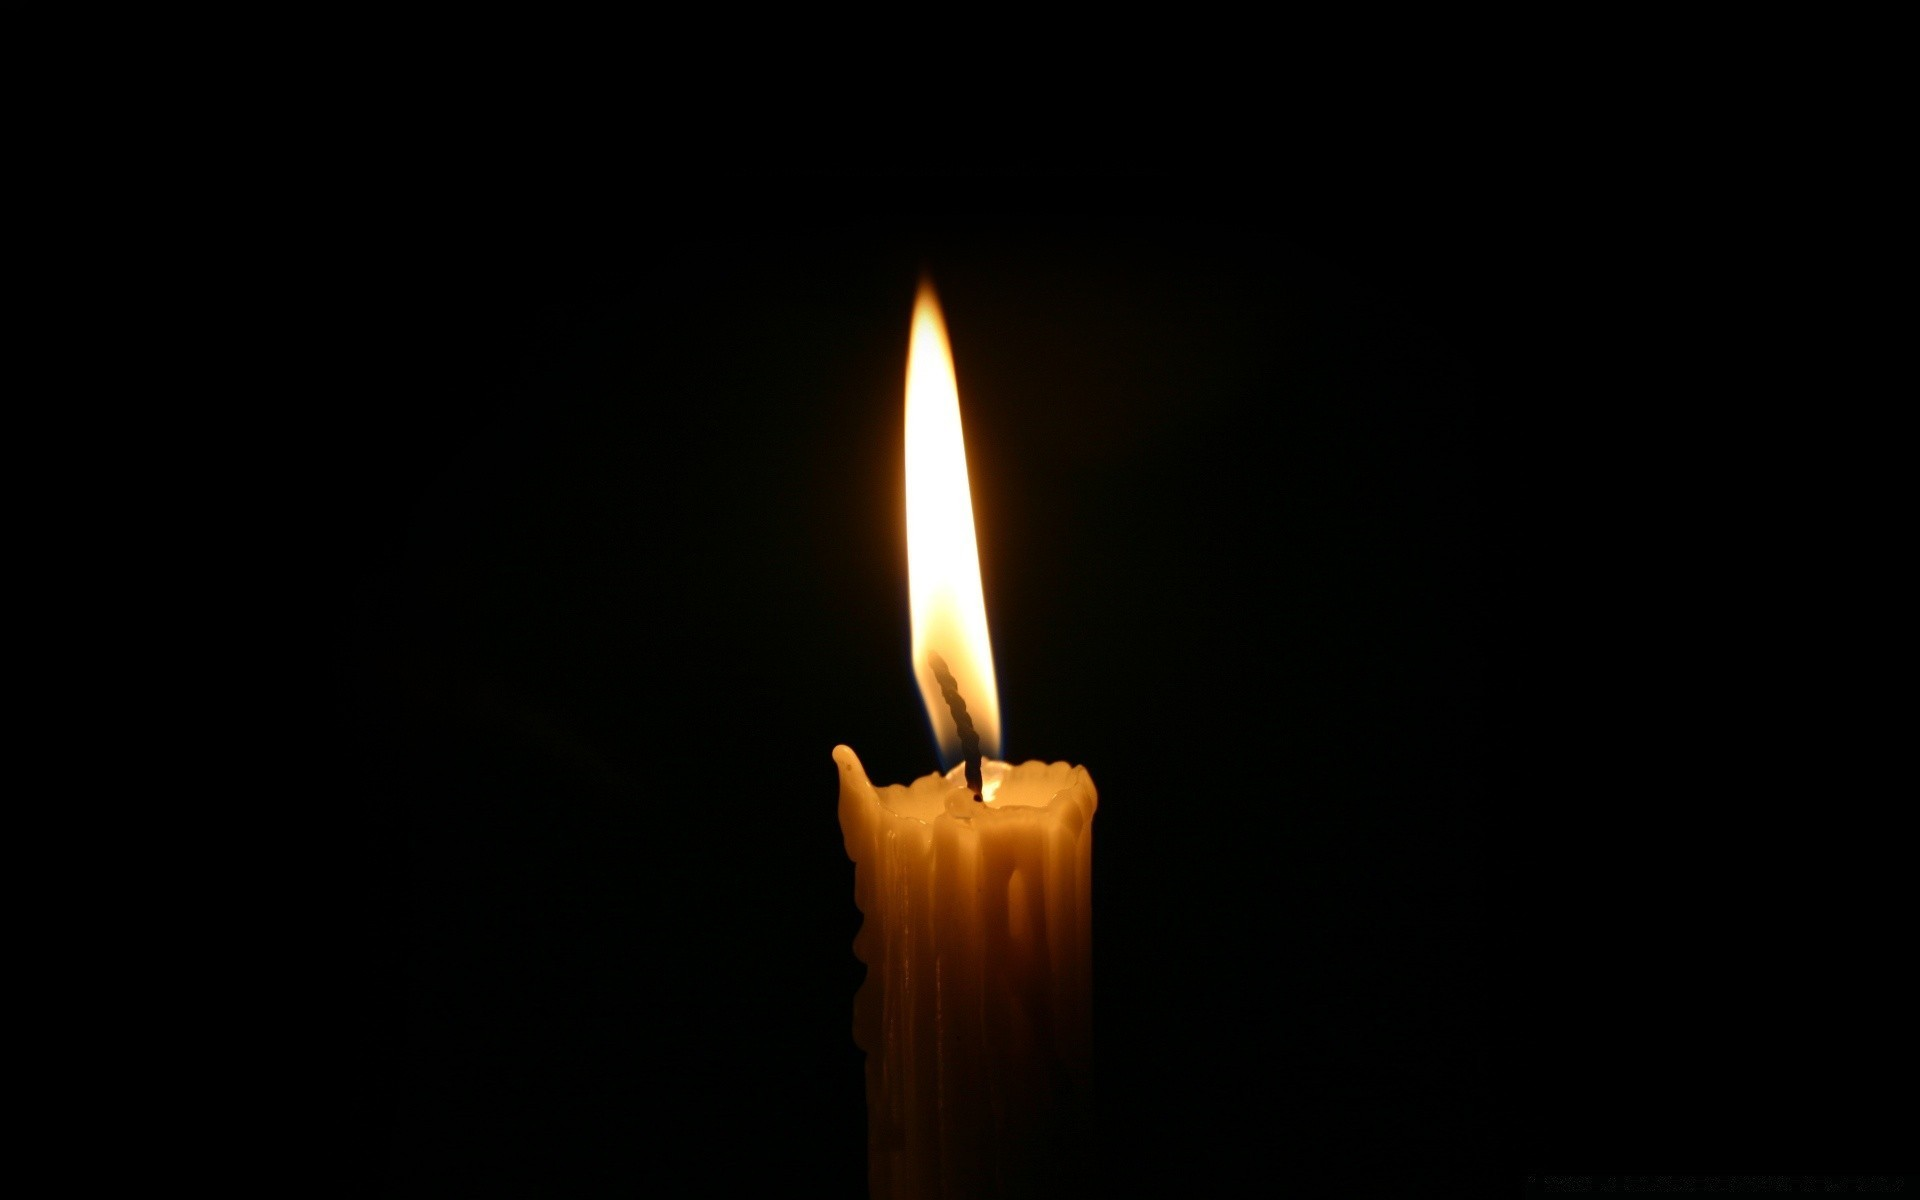 Black flame candle burnt wax dark candlelight christmas burn HD wallpaper.  Android wallpapers for free.